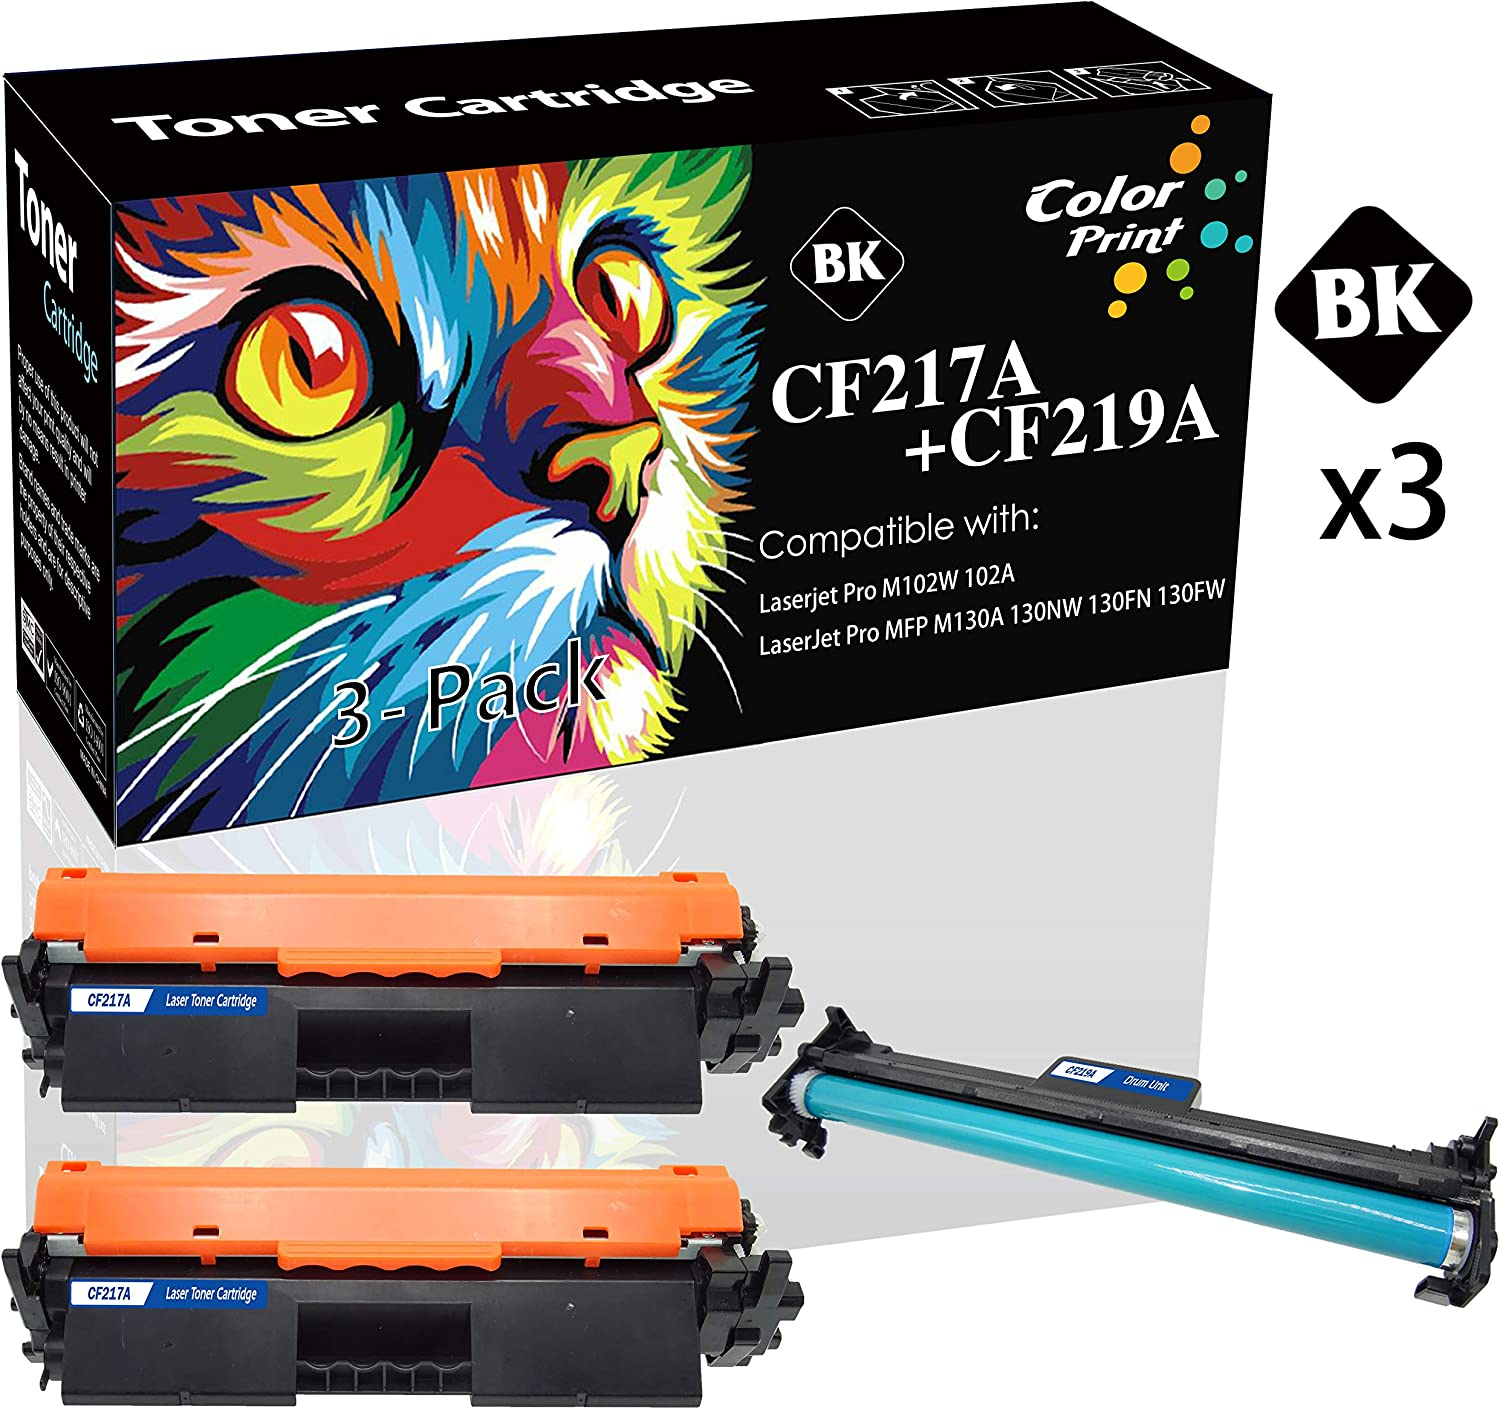 (2 Toners +1 Drum) Compatible CF217A 17A Toner Cartridge 2 Pack & CF219A 19A Drum Unit 1 Pack Used for HP Laserjet Pro M102A M102W MFP M130NW M130FN M130A M130FW Printer, by ColorPrint